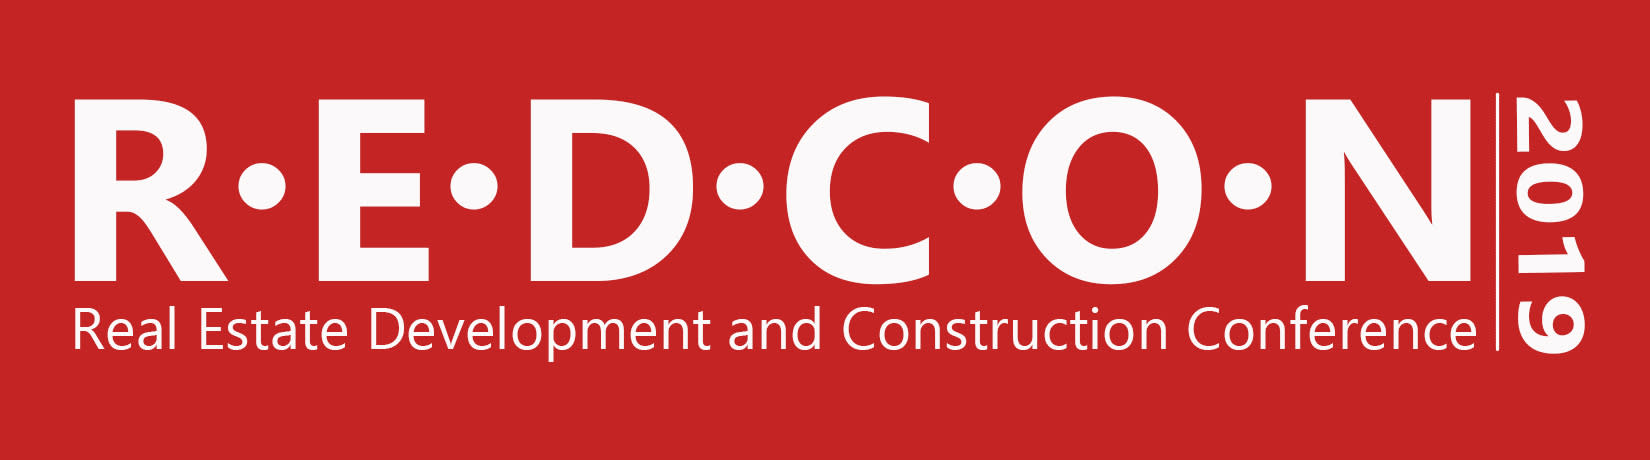 REDCON: Real Estate Development and Construction Conference